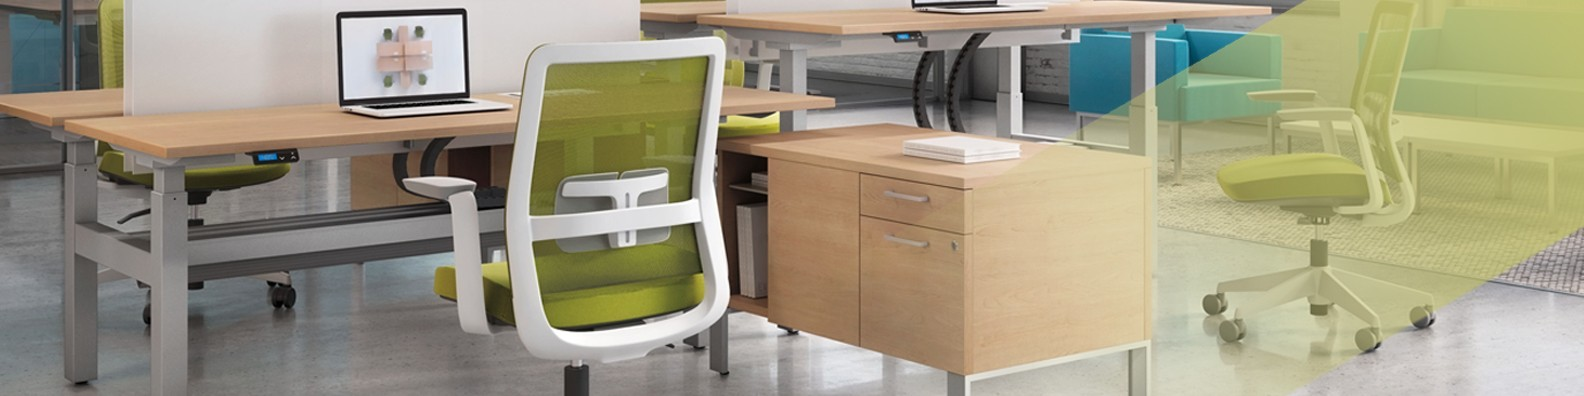 Office Furniture Now Linkedin, Office And Furniture